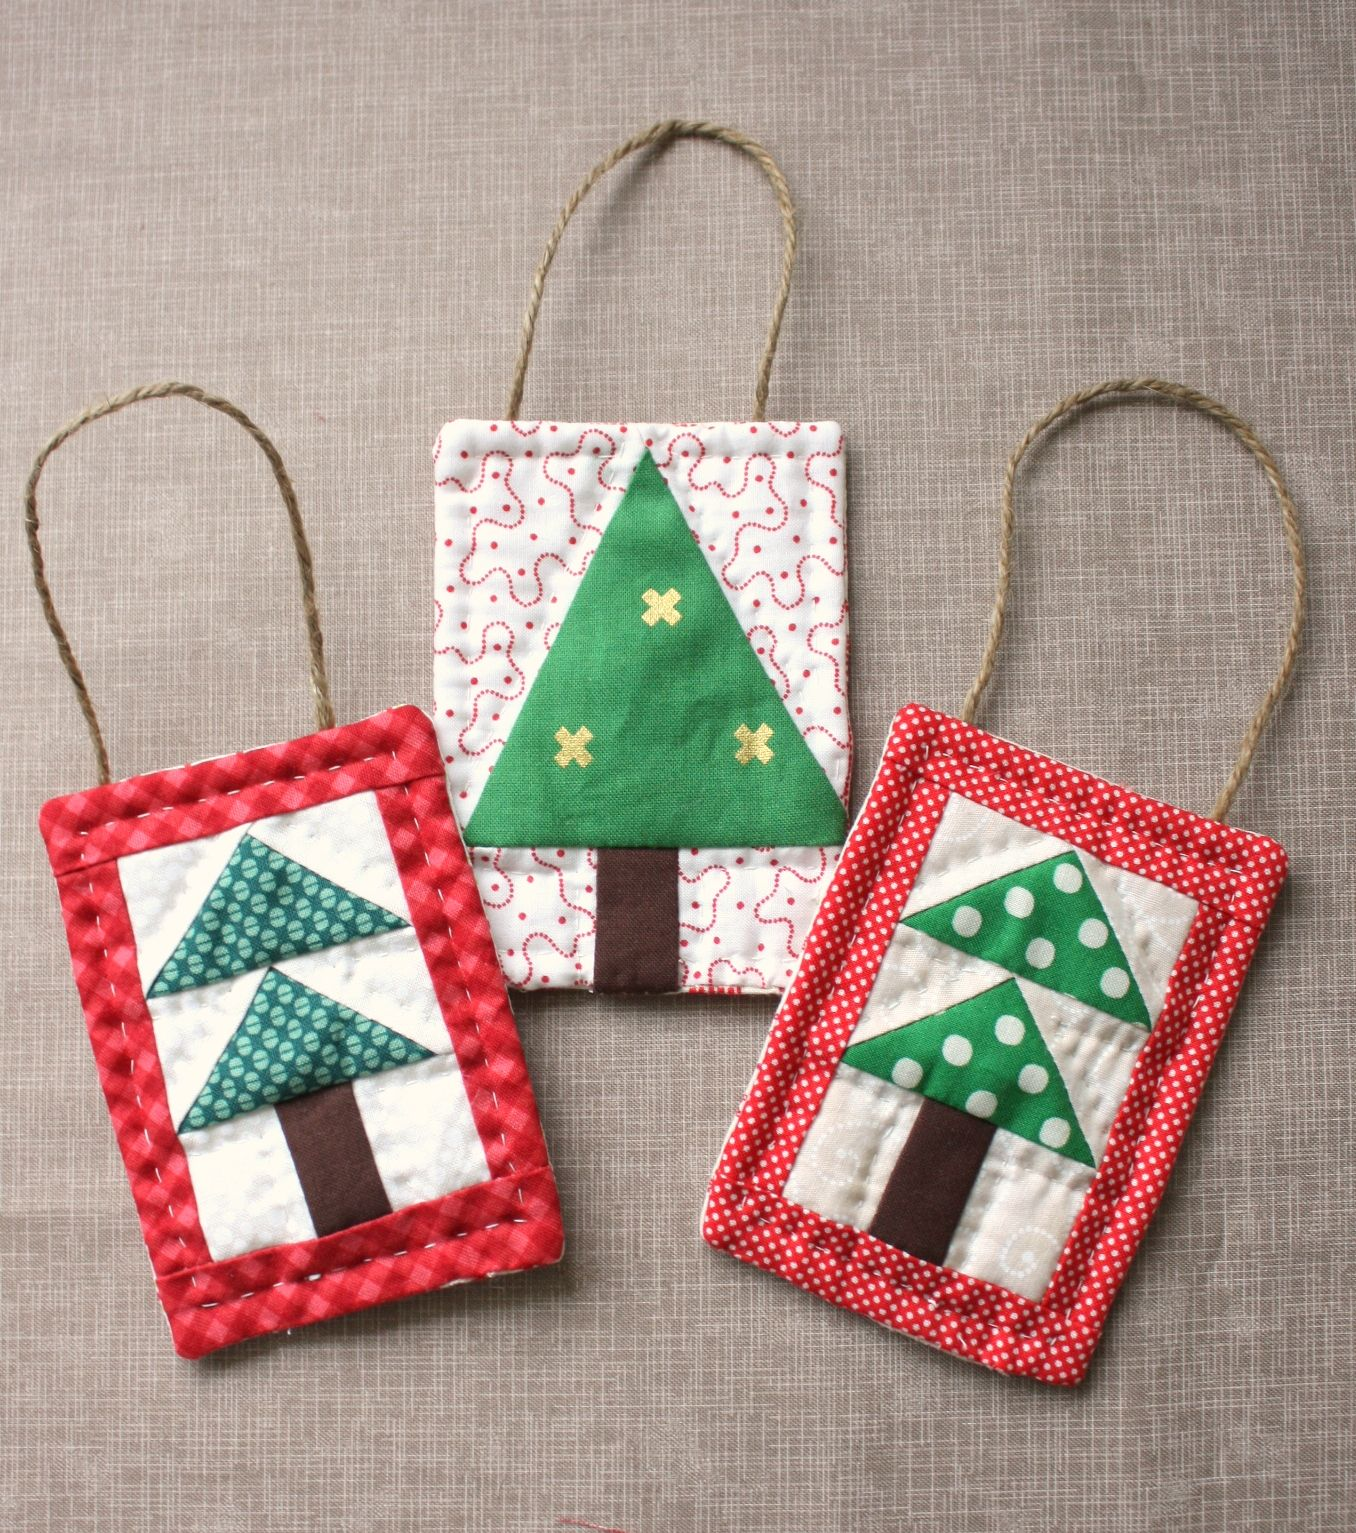 If You Are Looking For A Small Quilted Project To Adorn Presents You Give Consider Making A Quilted Christmas Ornaments Christmas Tree Quilt Quilted Ornaments